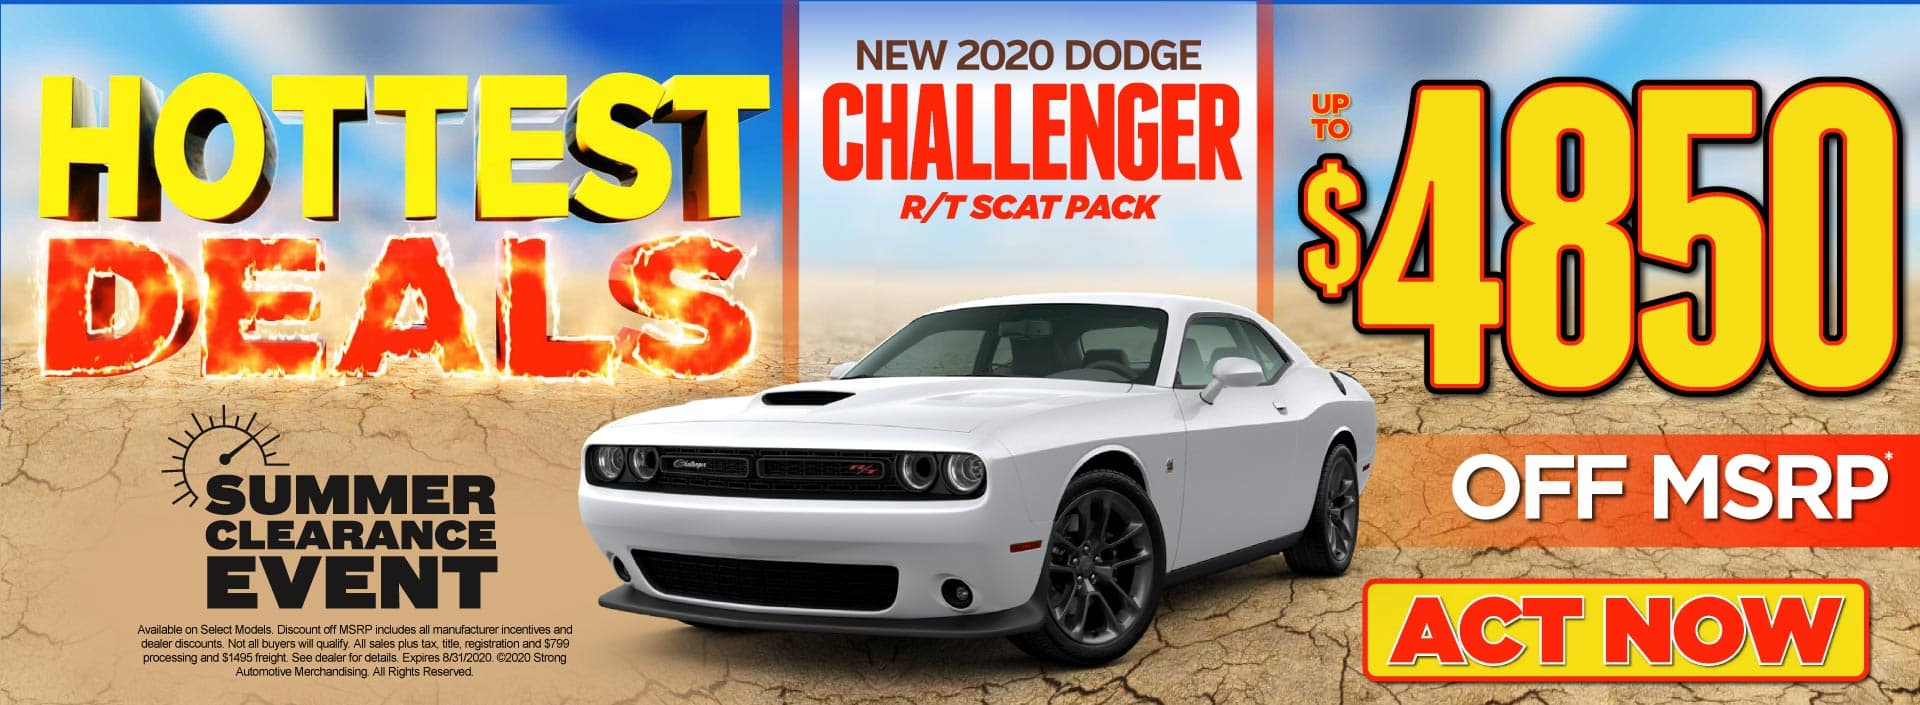 New 2020 Dodge Challenger - Up to $4850 off MSRP* - Click to View Inventory